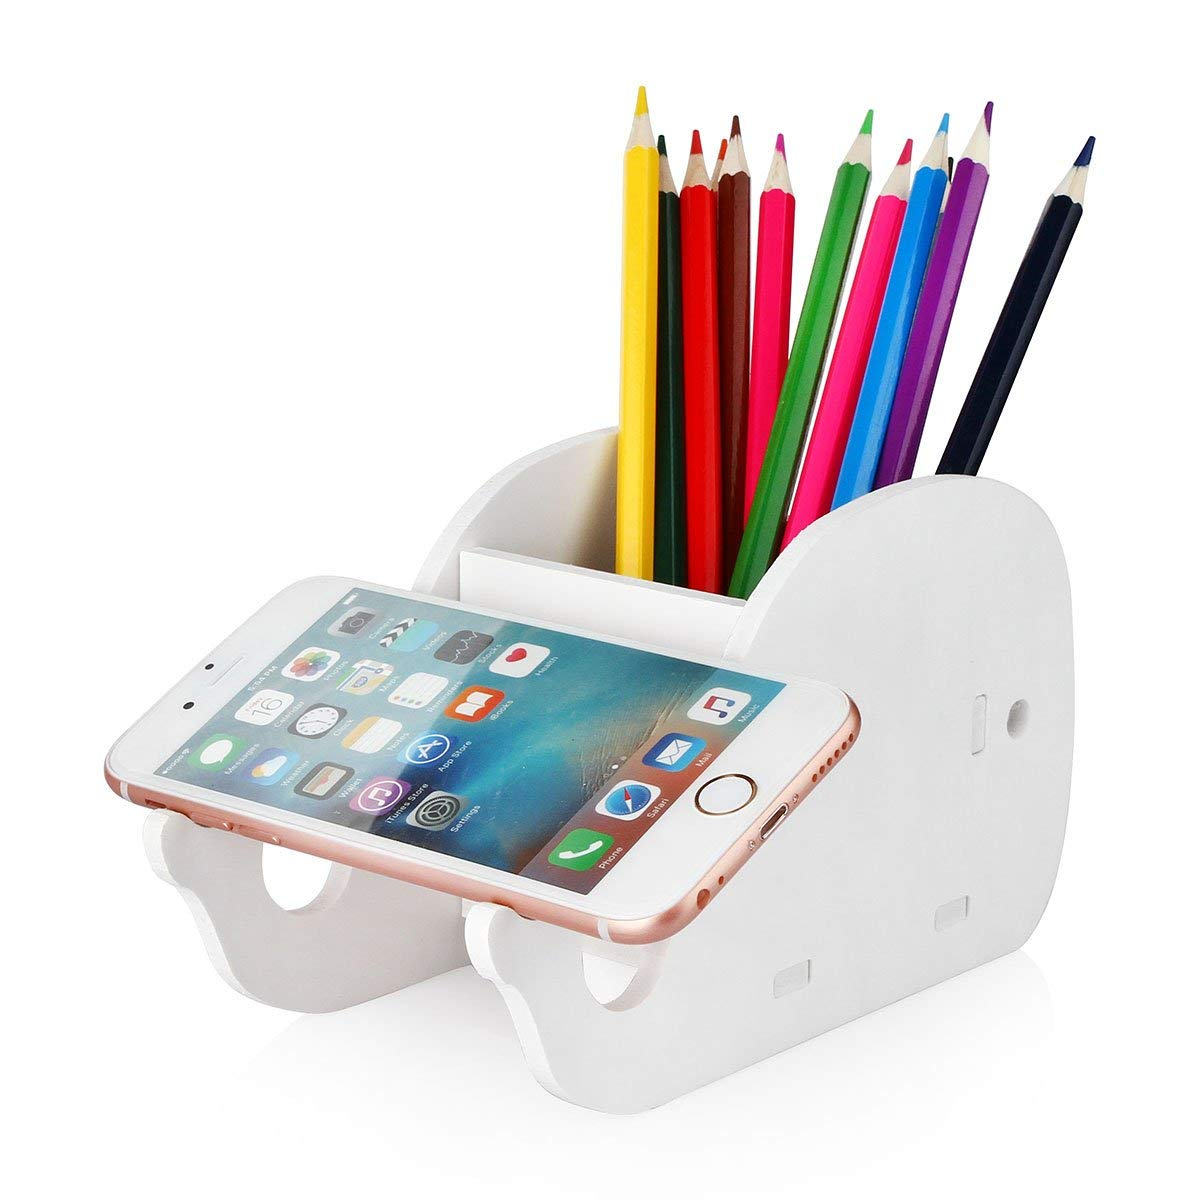 new concept e33a1 4db38 Cheap Cell Phone Pencil, find Cell Phone Pencil deals on line at ...